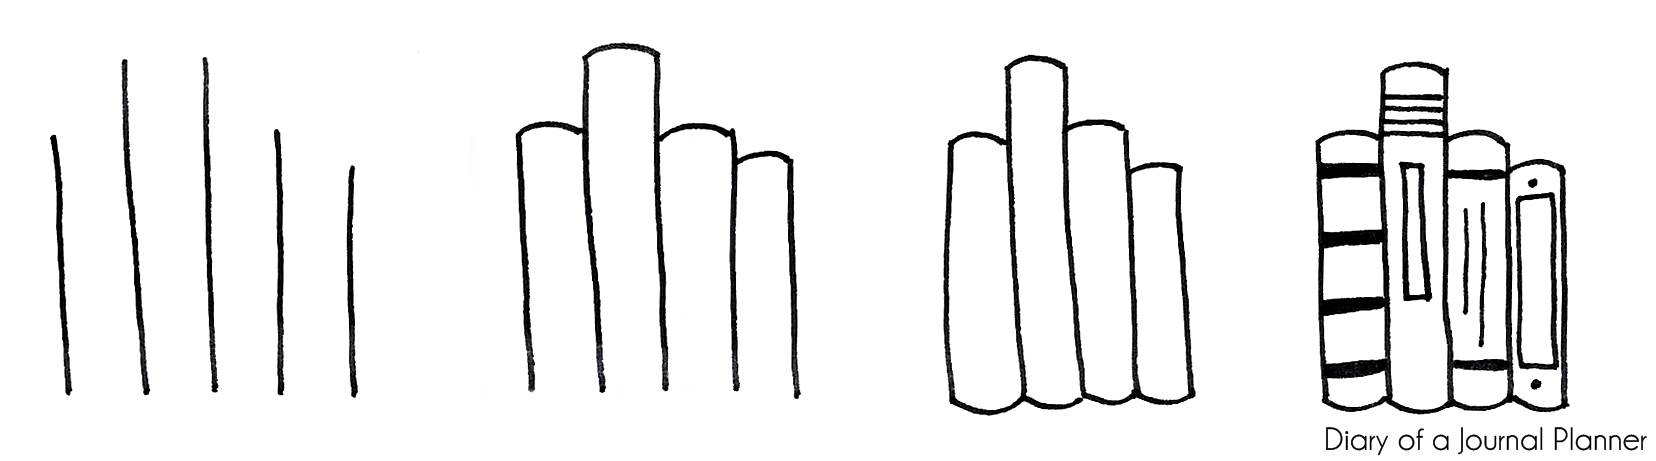 How to draw a book standing up